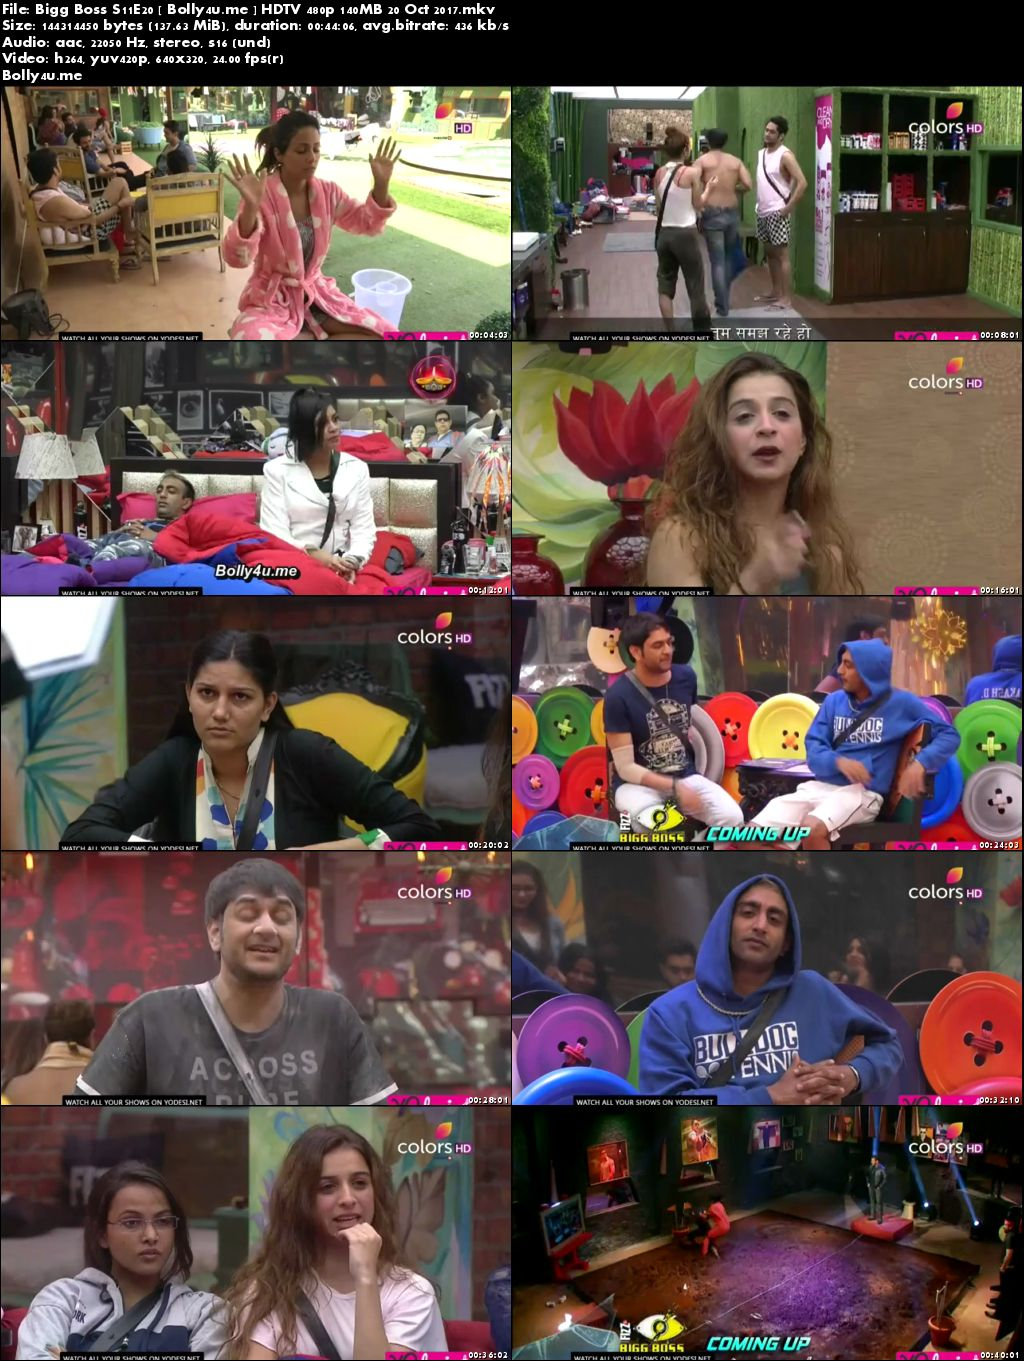 Bigg Boss S11E20 HDTV 480p 140MB 20 Oct 2017 Download